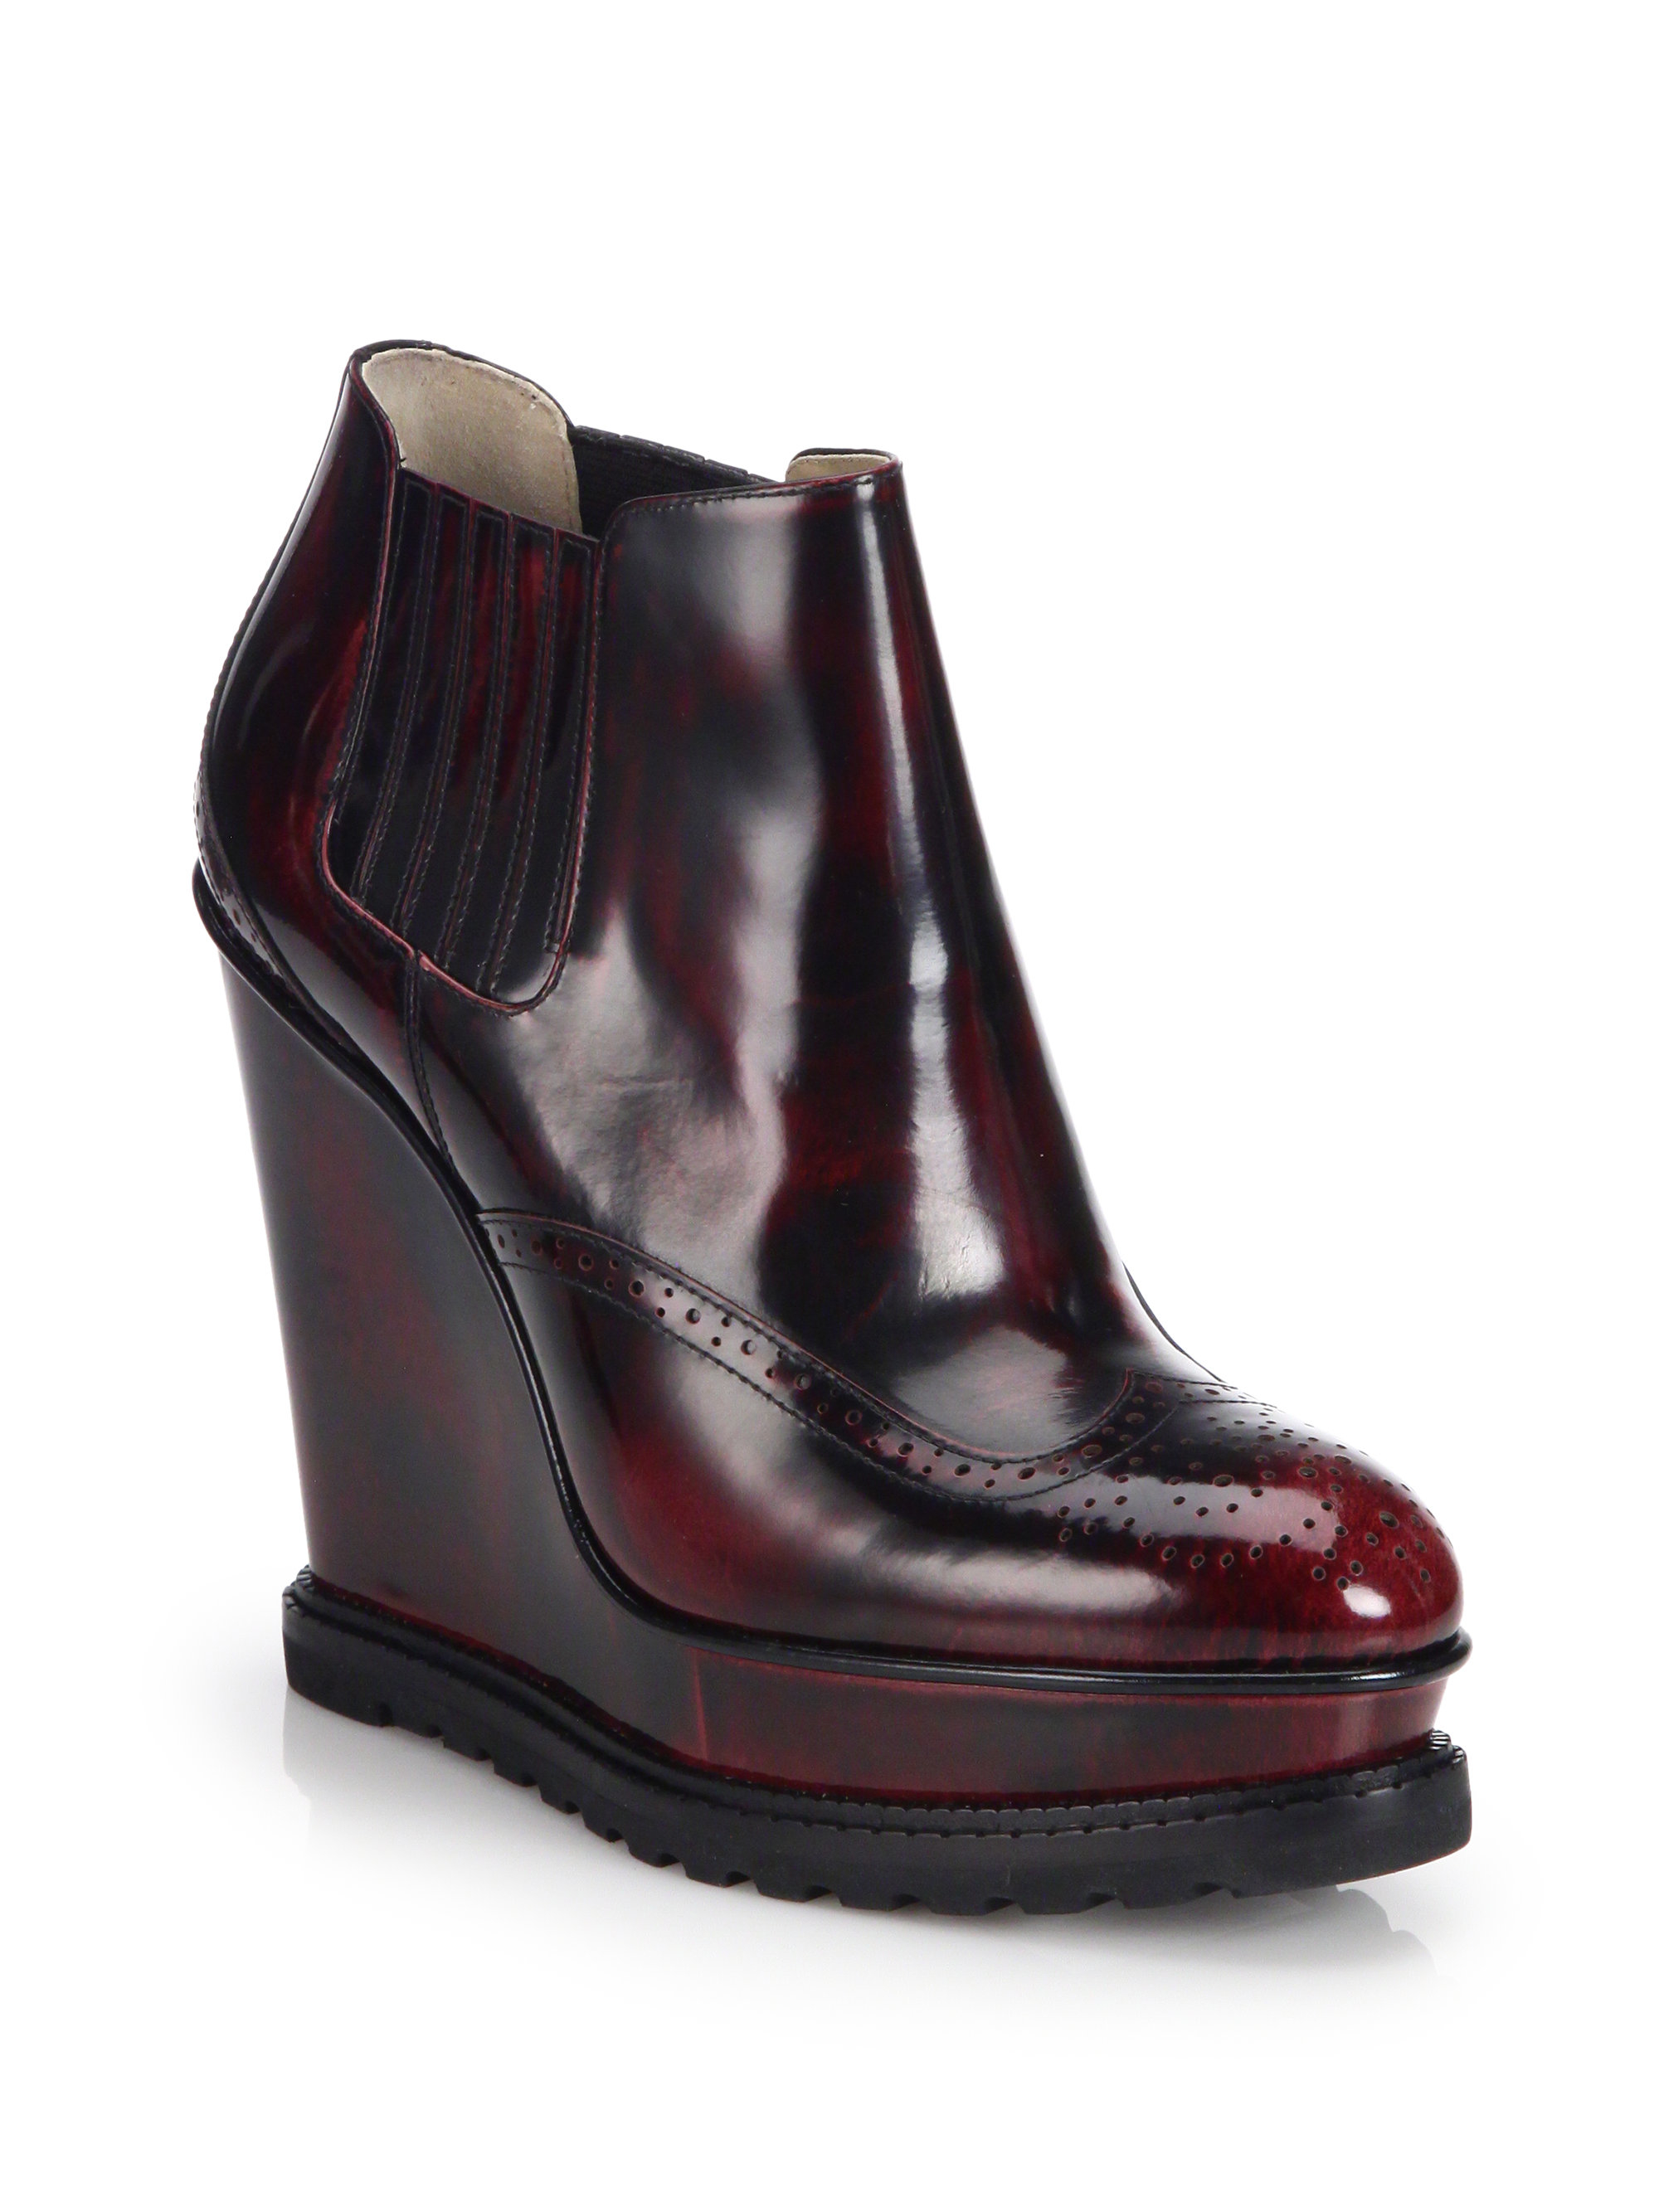 michael kors collette patent leather wedge ankle boots in